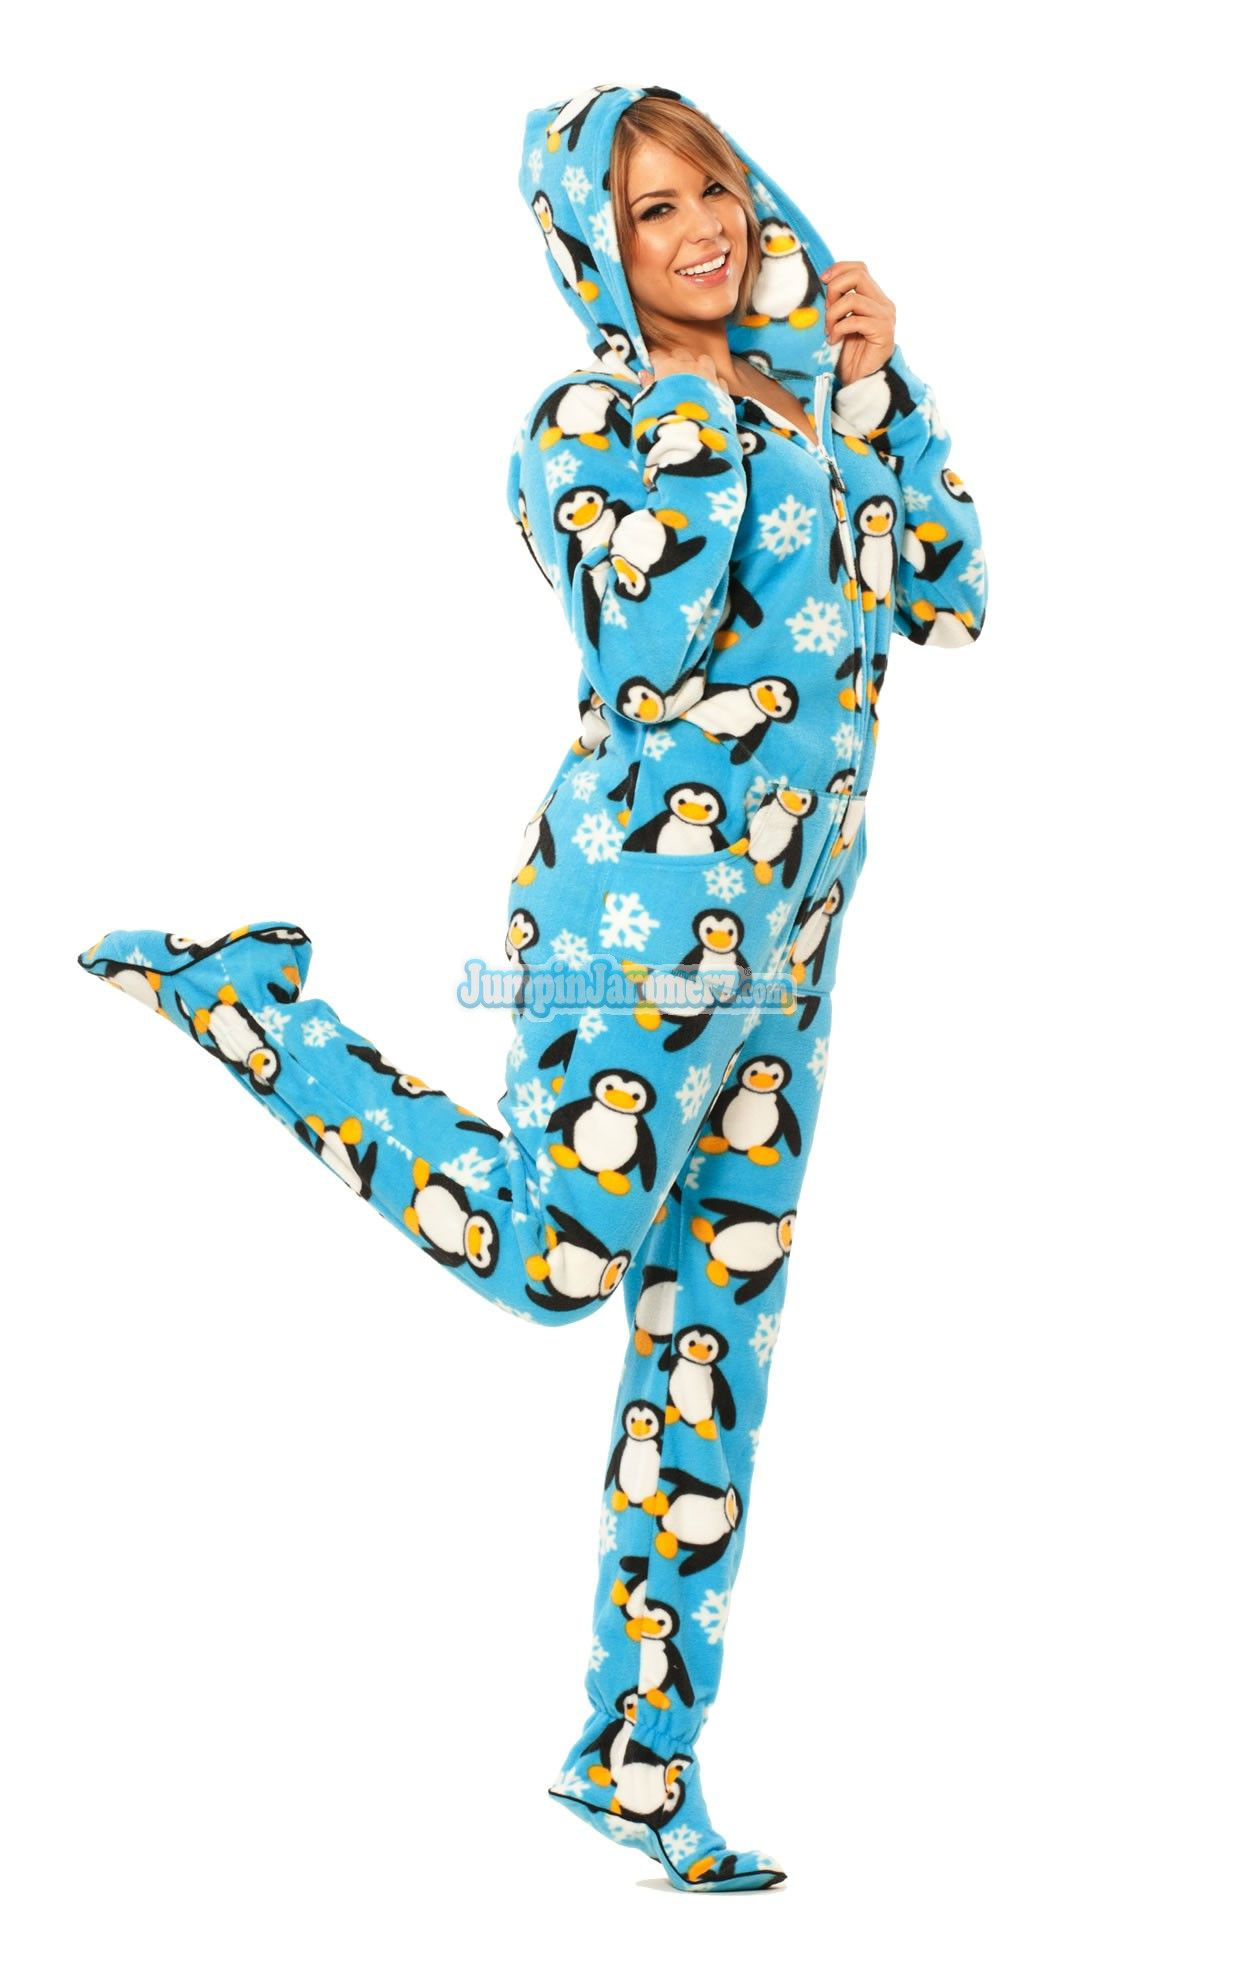 Top 10 best onesies for adult men. OK now you have seen a taste of the woman's adult onesies and costumes, lets check out some of the best onesies for men. Below you will find my top 10 list of the best onesies for adult males. Most of the items on this list are not .